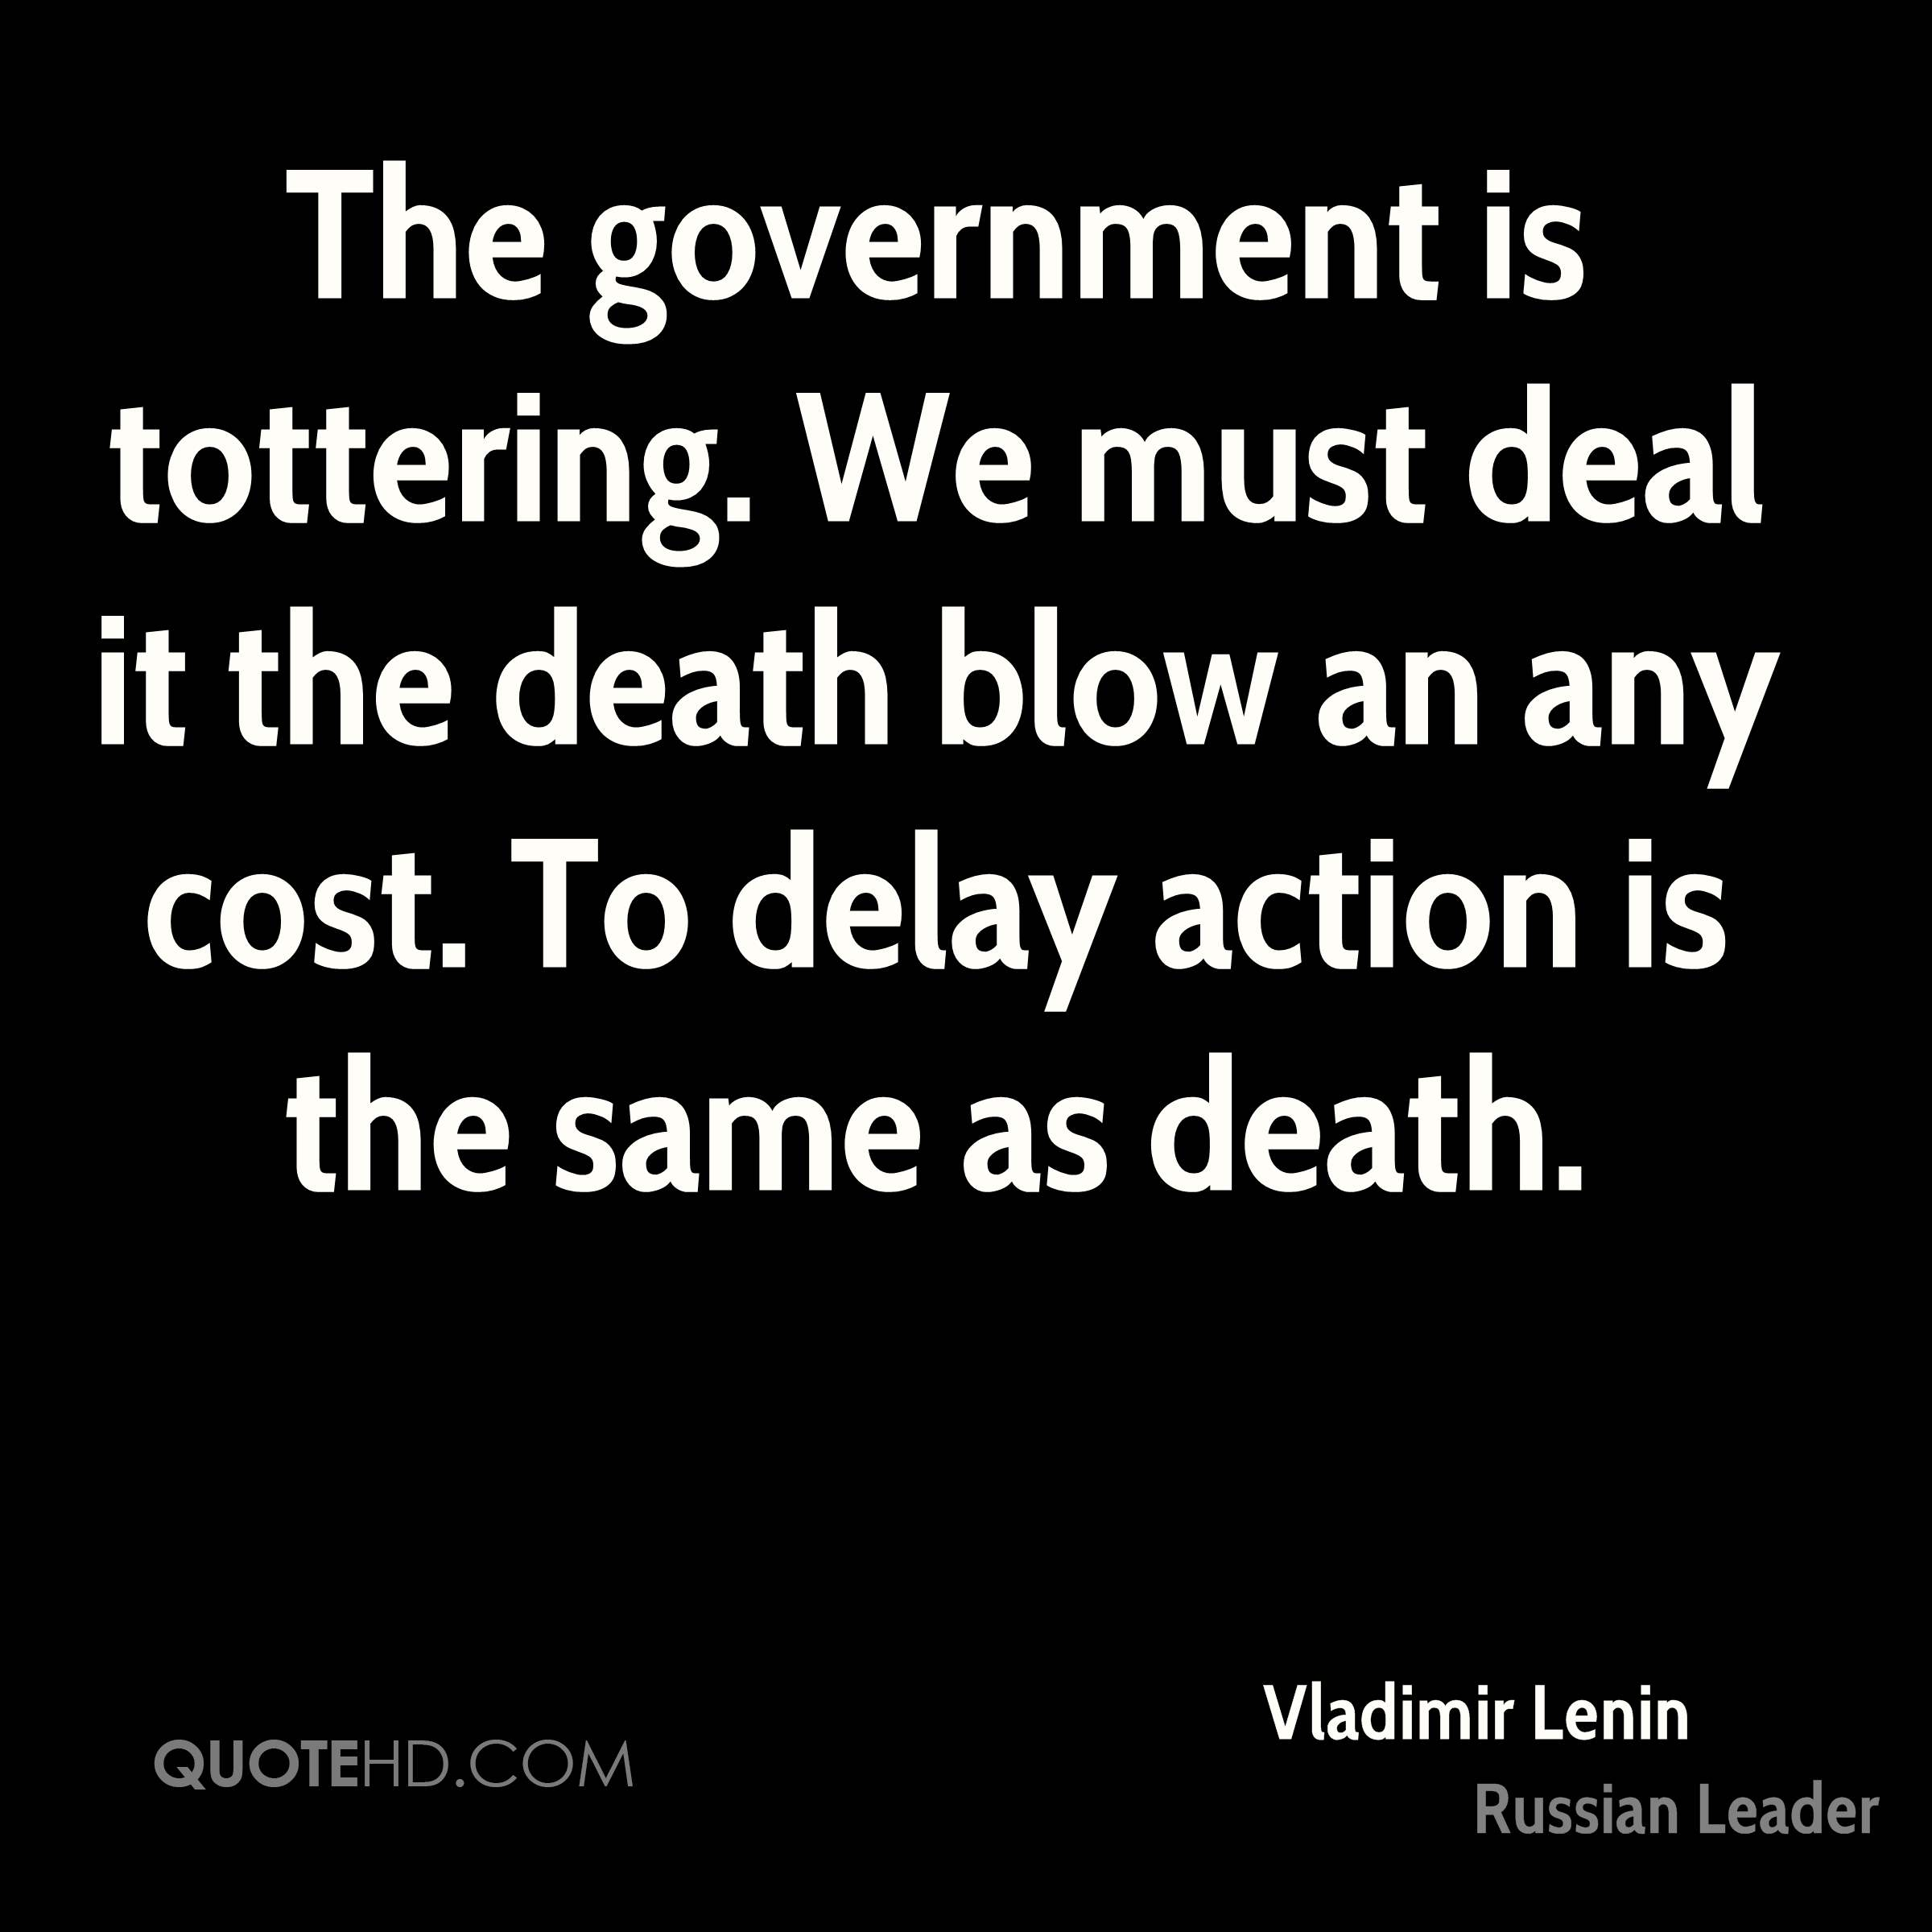 The government is tottering. We must deal it the death blow an any cost. To delay action is the same as death.